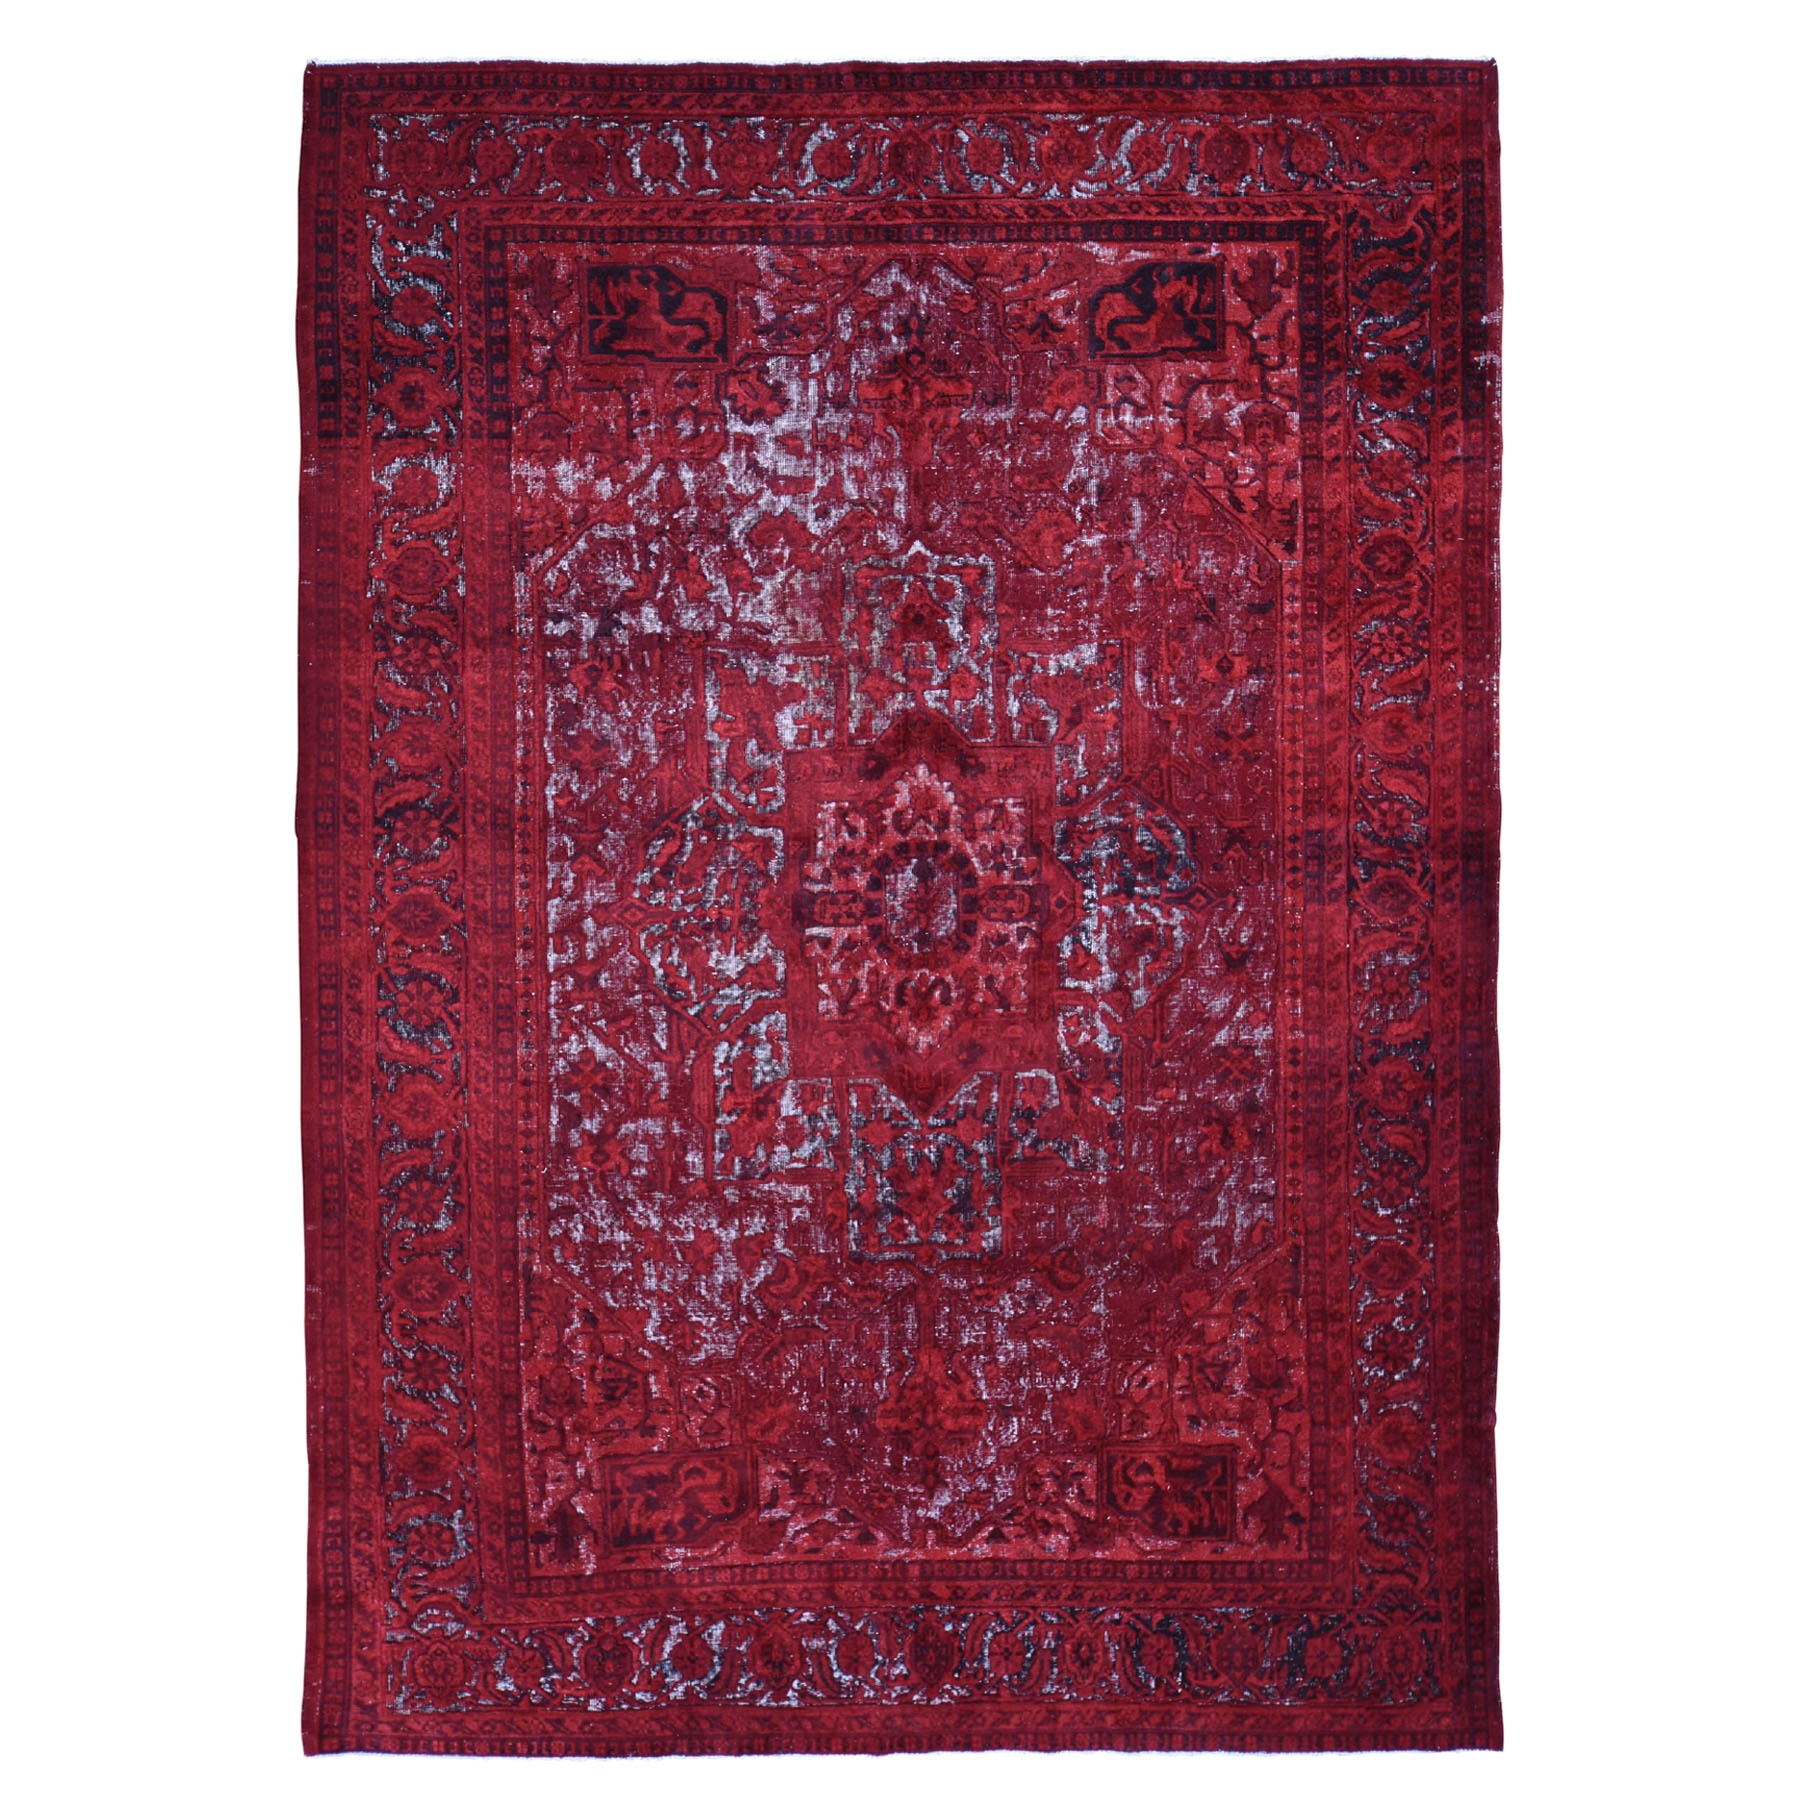 overdyed & vintage rugs LUV441279